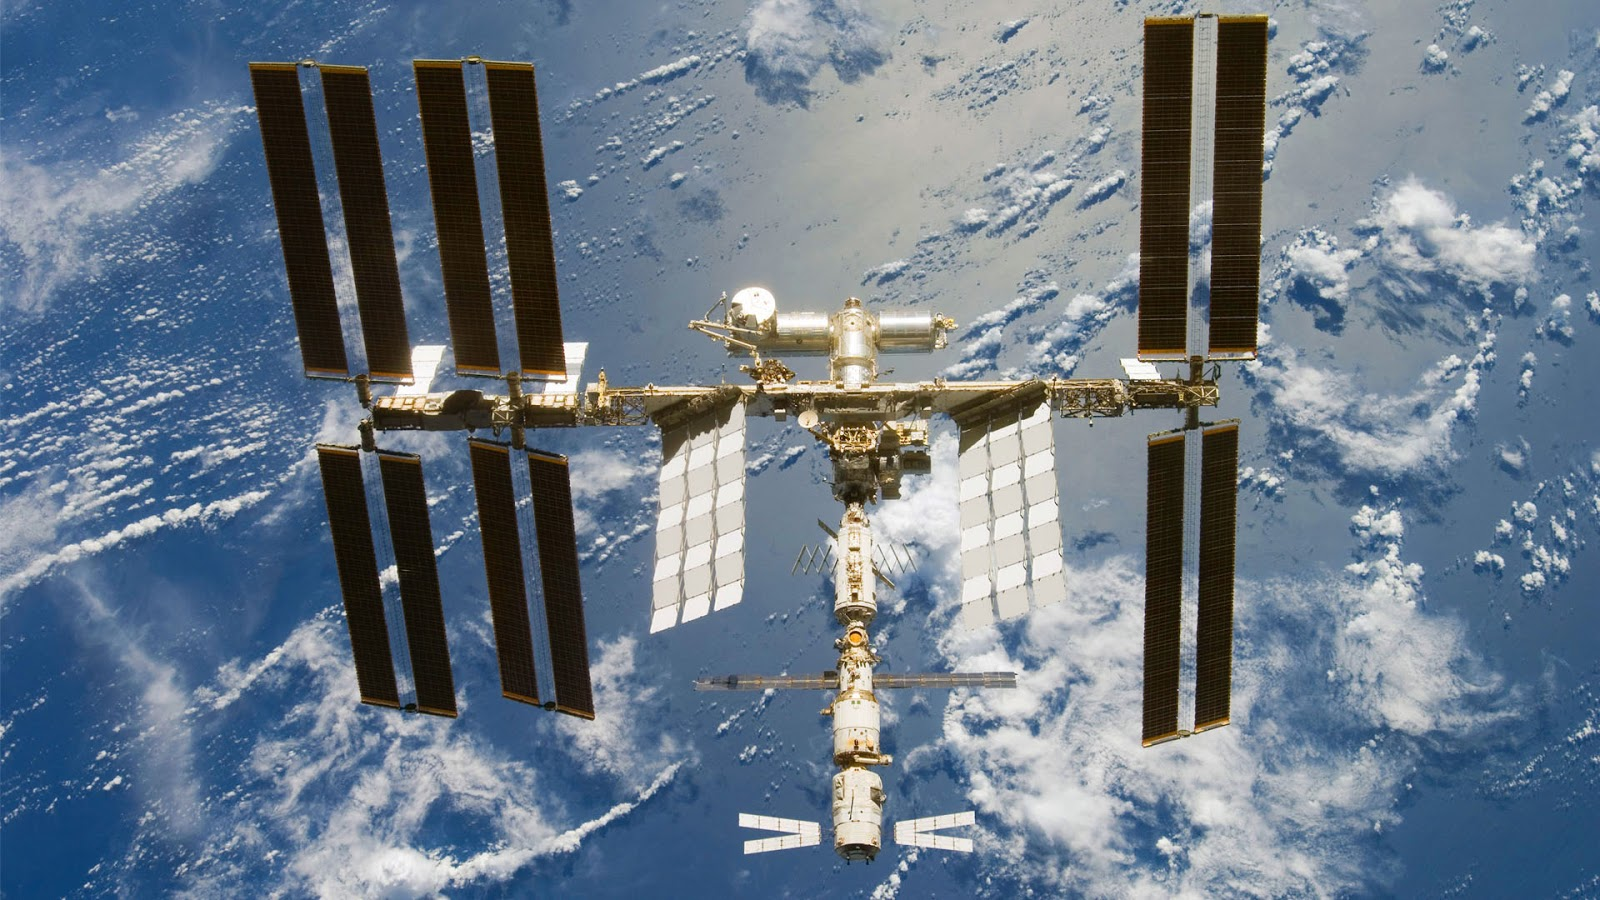 32 space station hd - photo #8